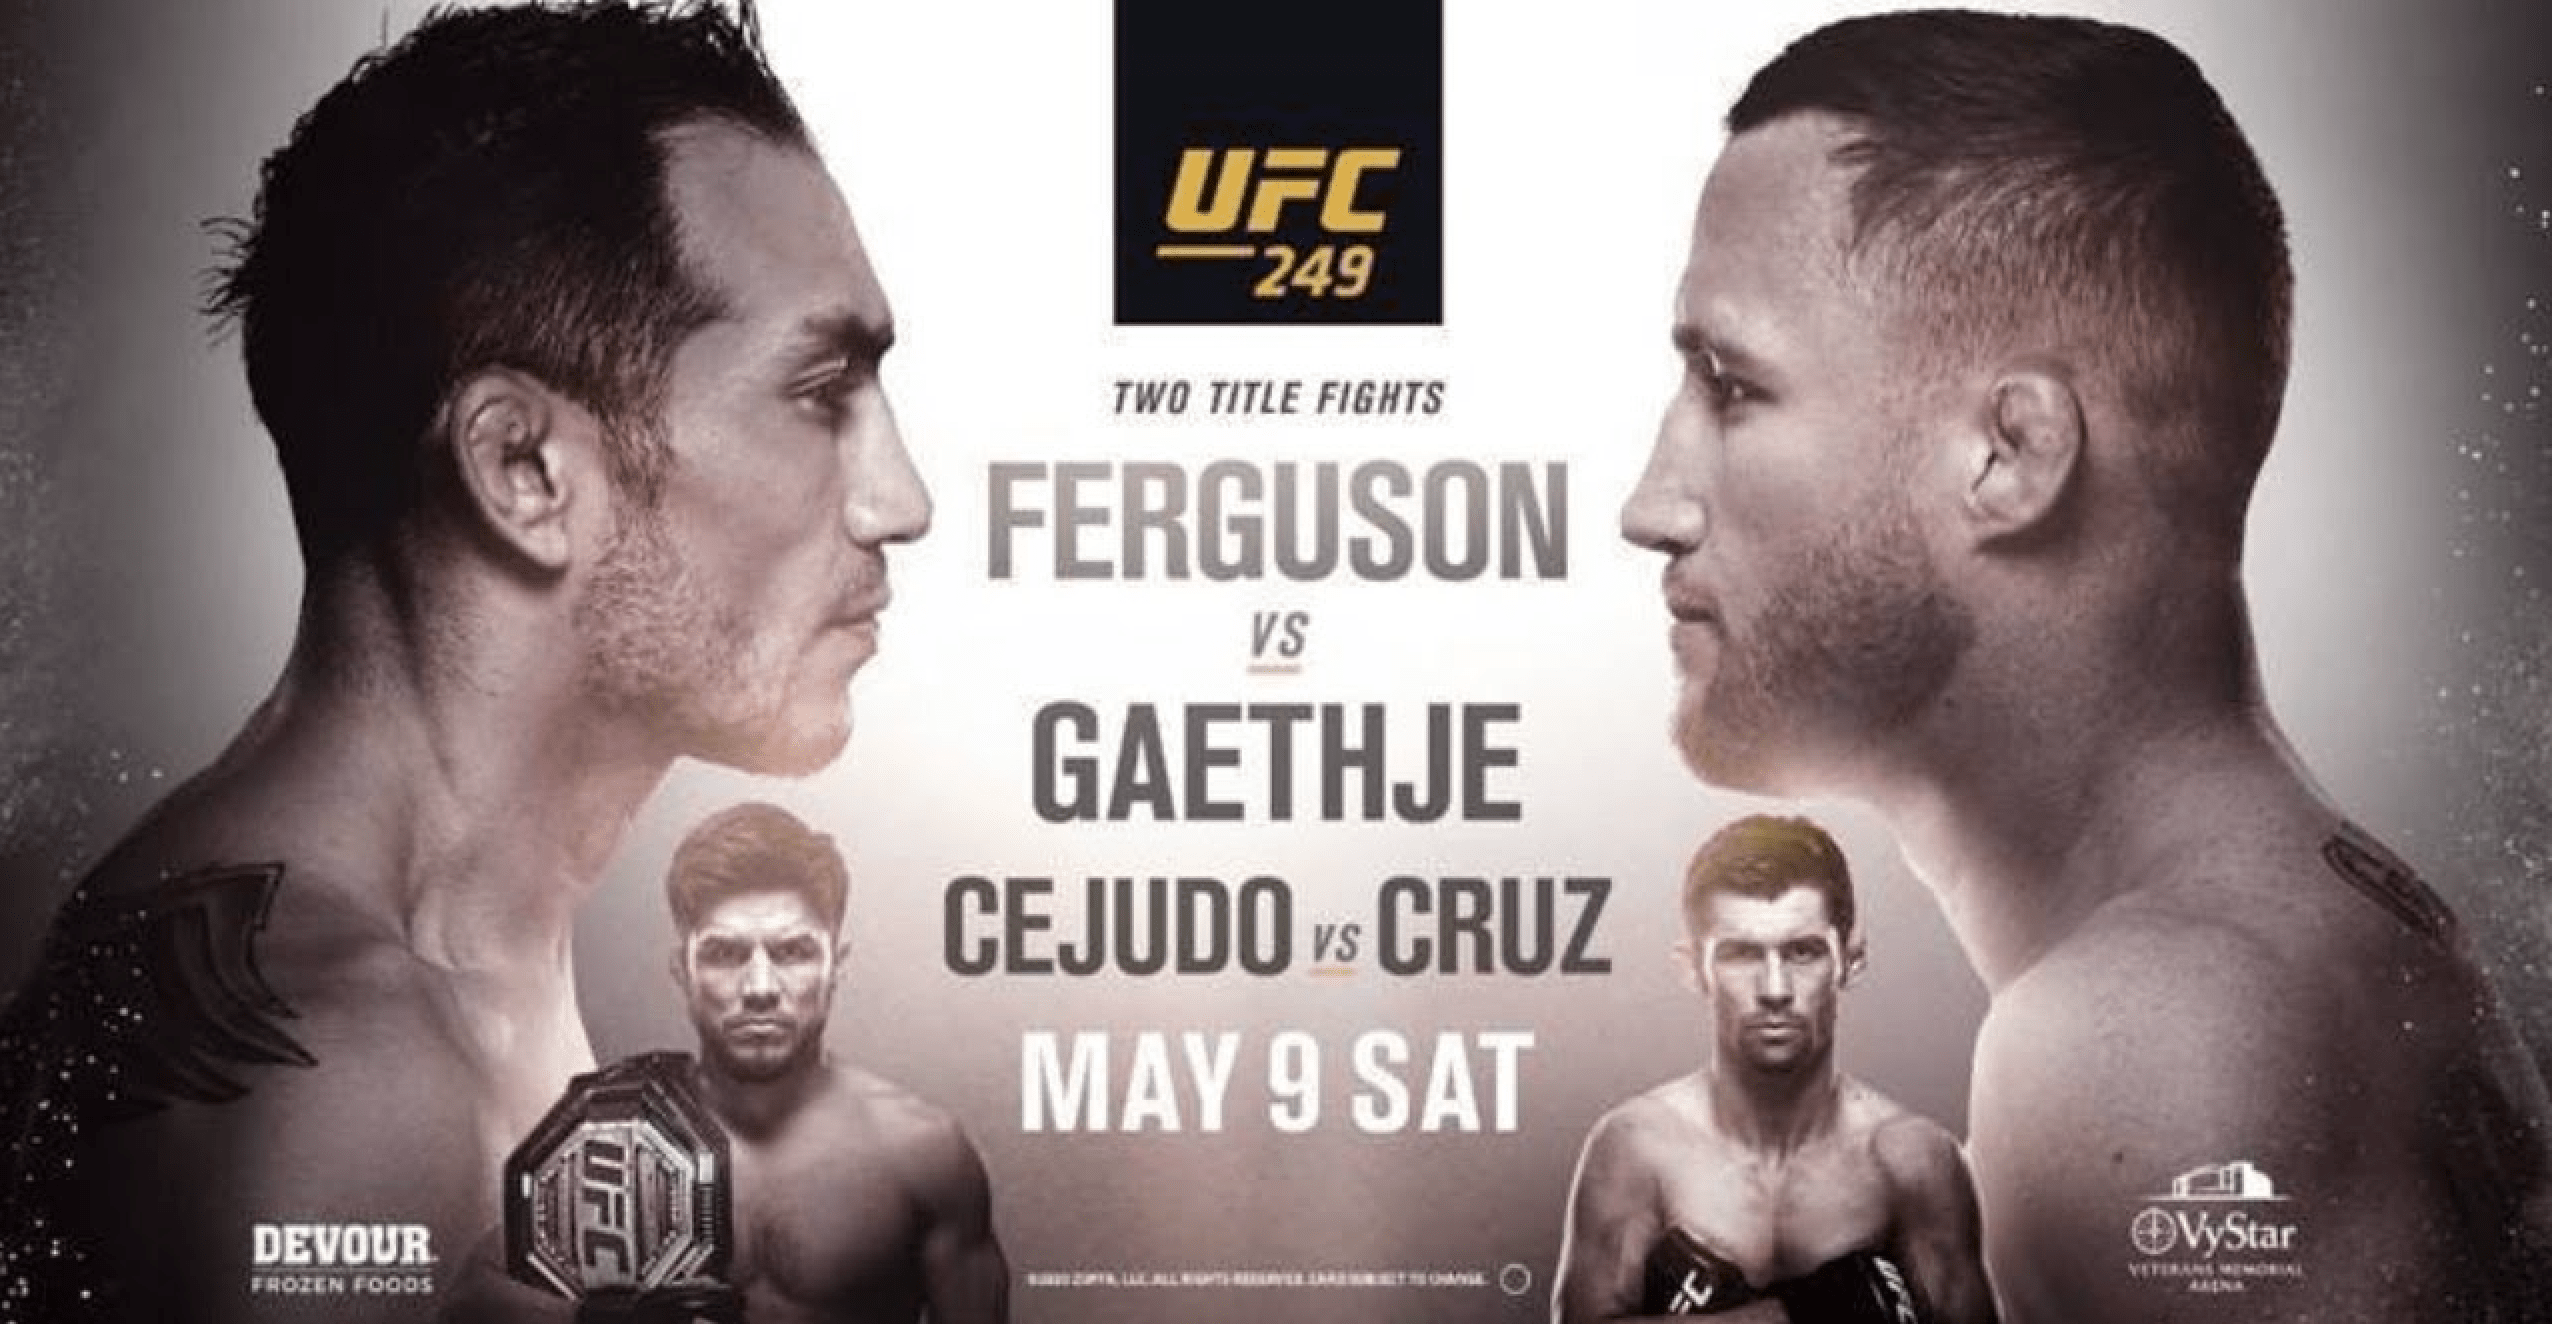 UFC 249 Headliners Are Excited To Put On A Show For The Fans